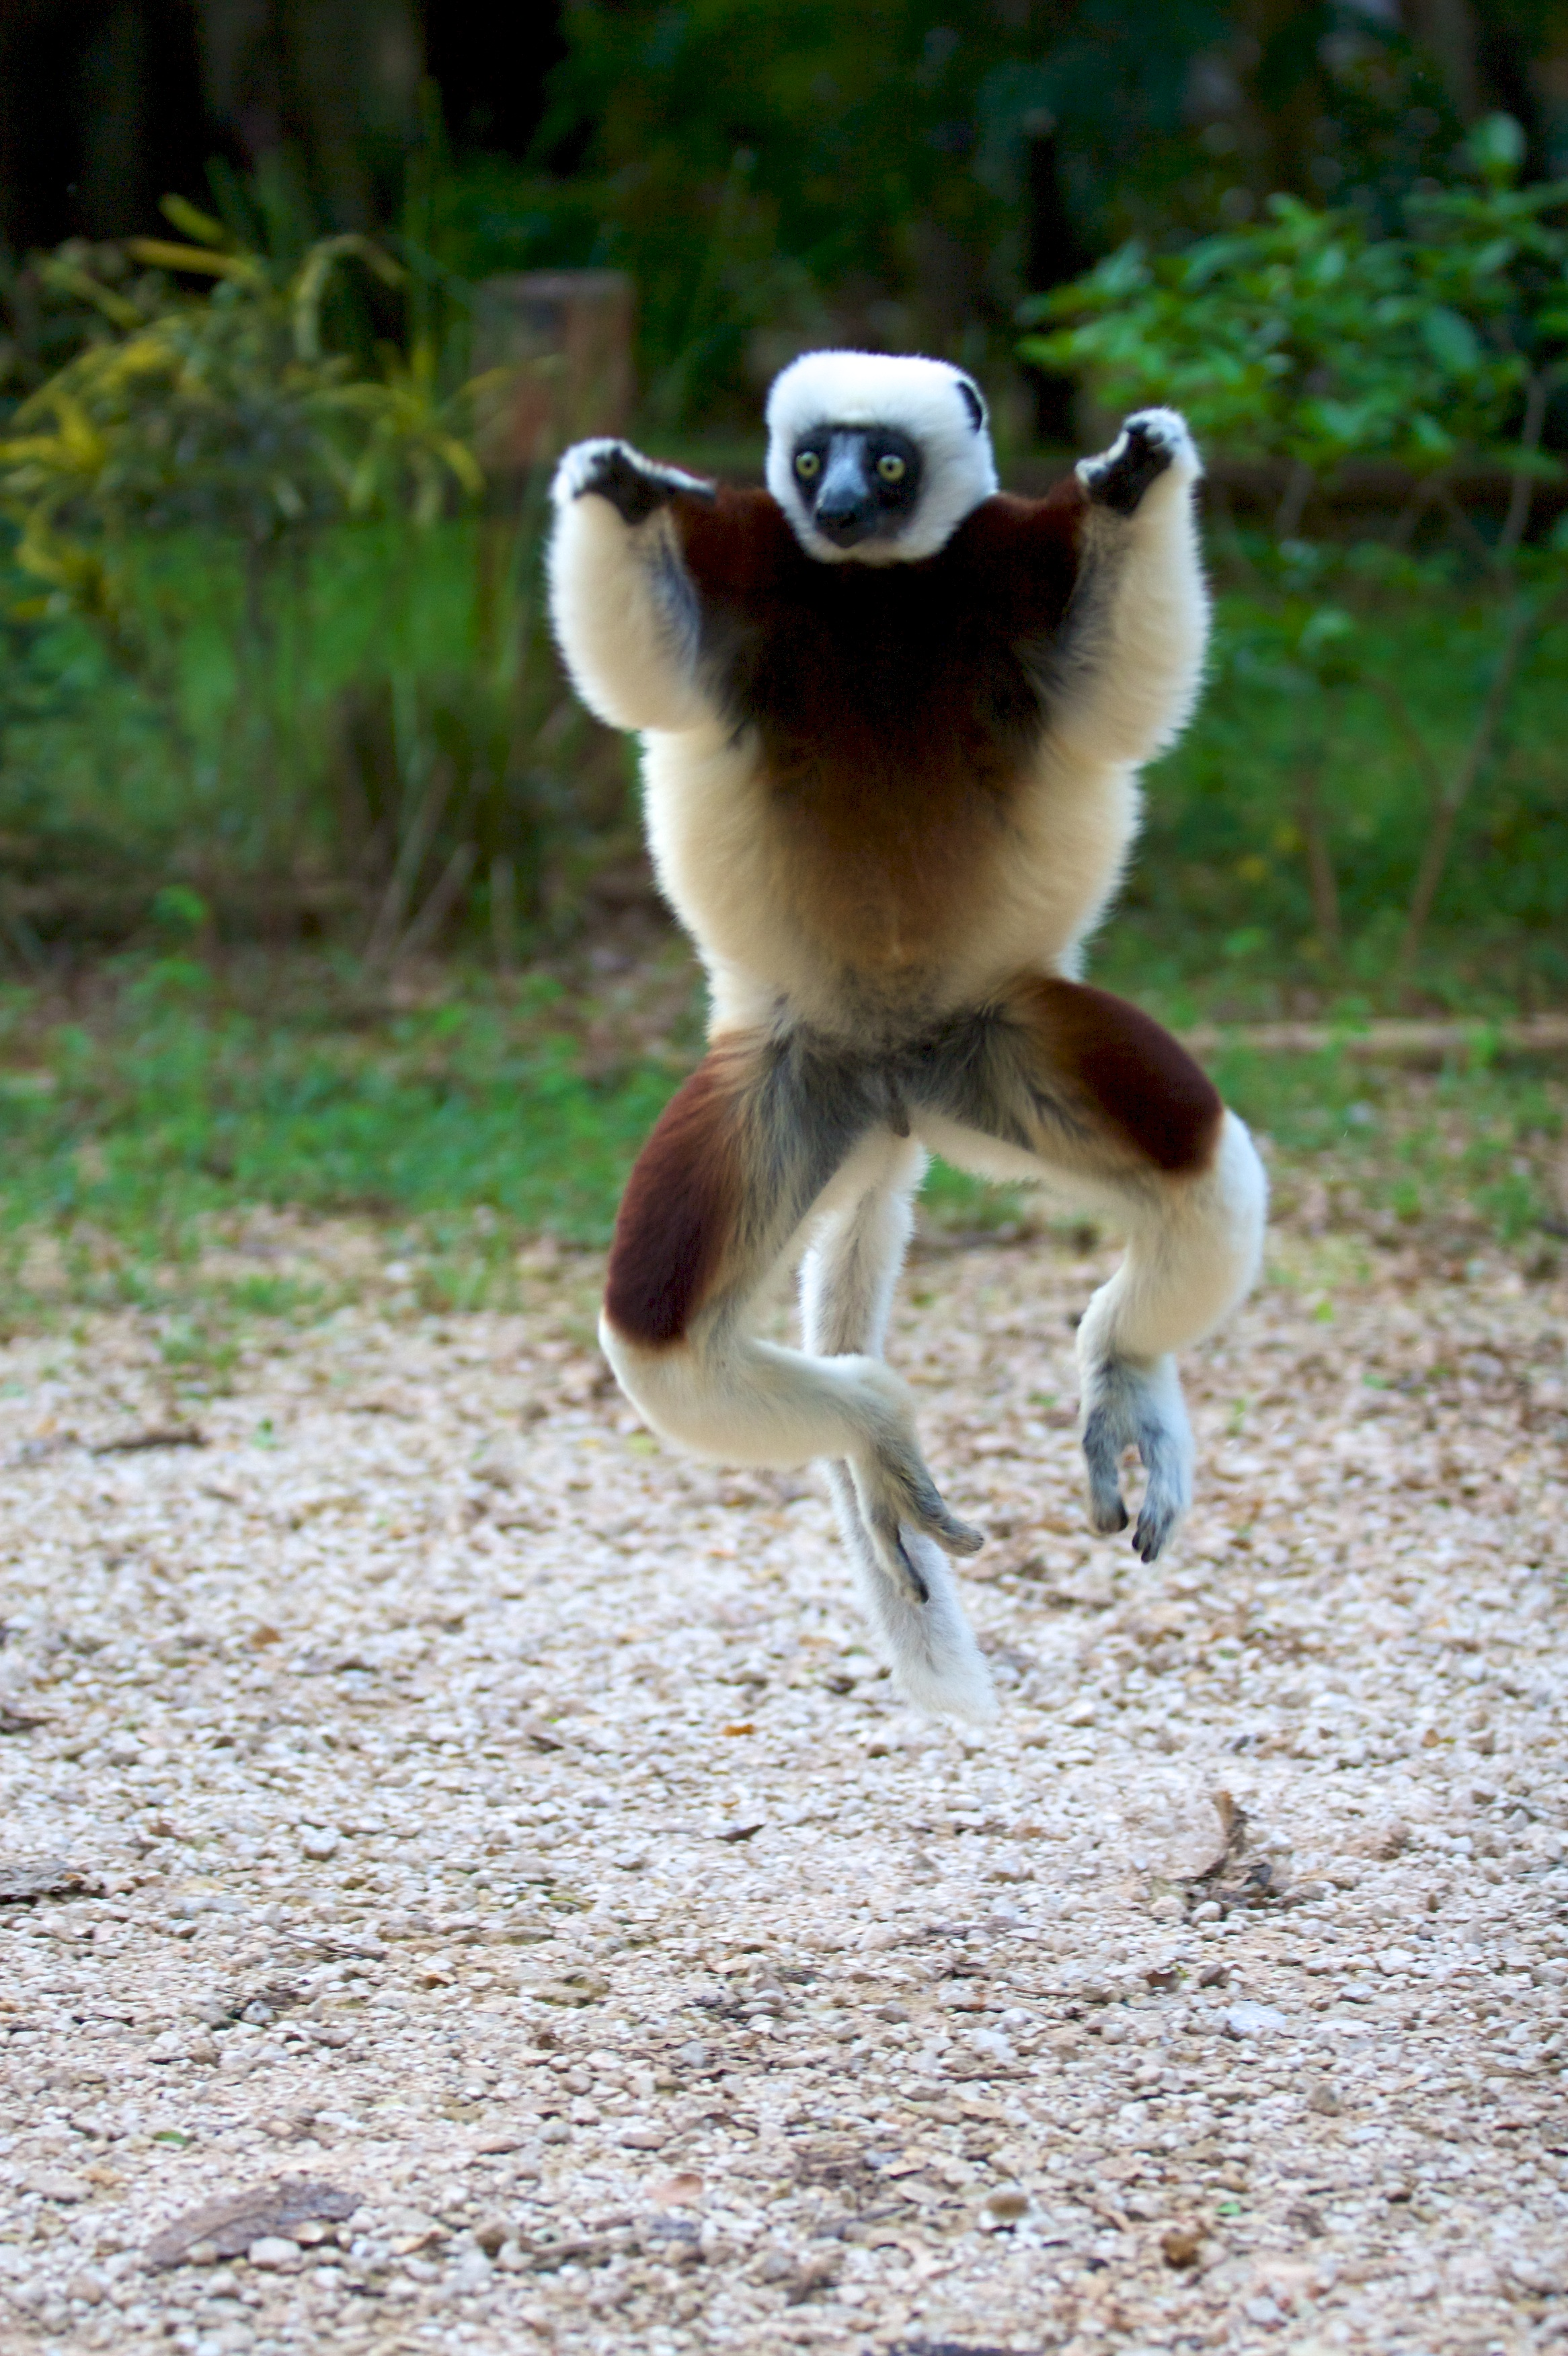 Jumping sifaka in Ankarafantsika National Park. Photo by Travis Steffens